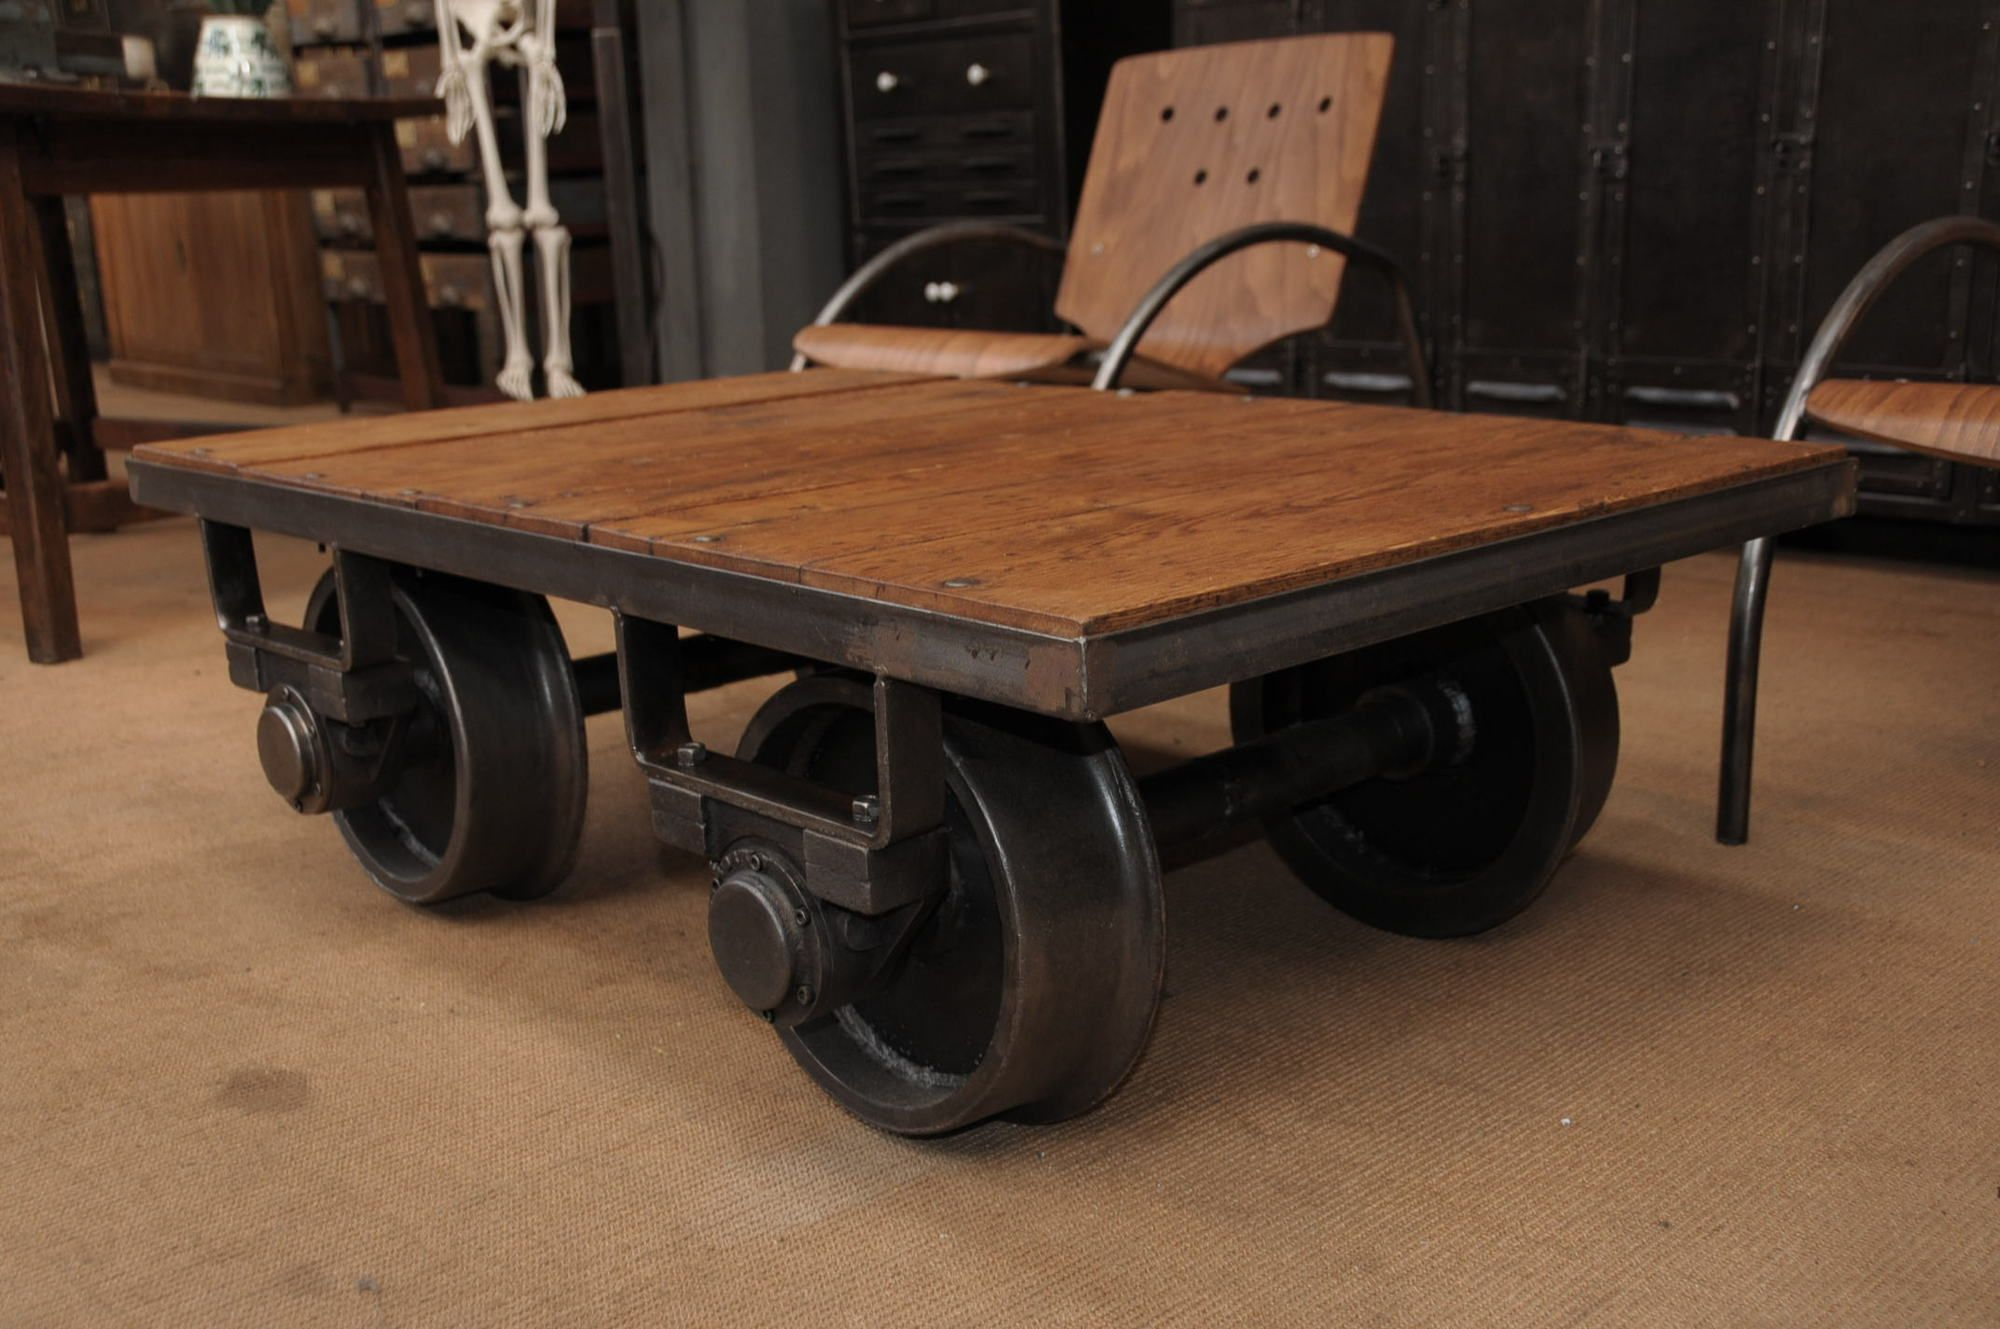 SOLD An Old Coal Mine Cart Transformed Into A Coffee Table 1 Copy